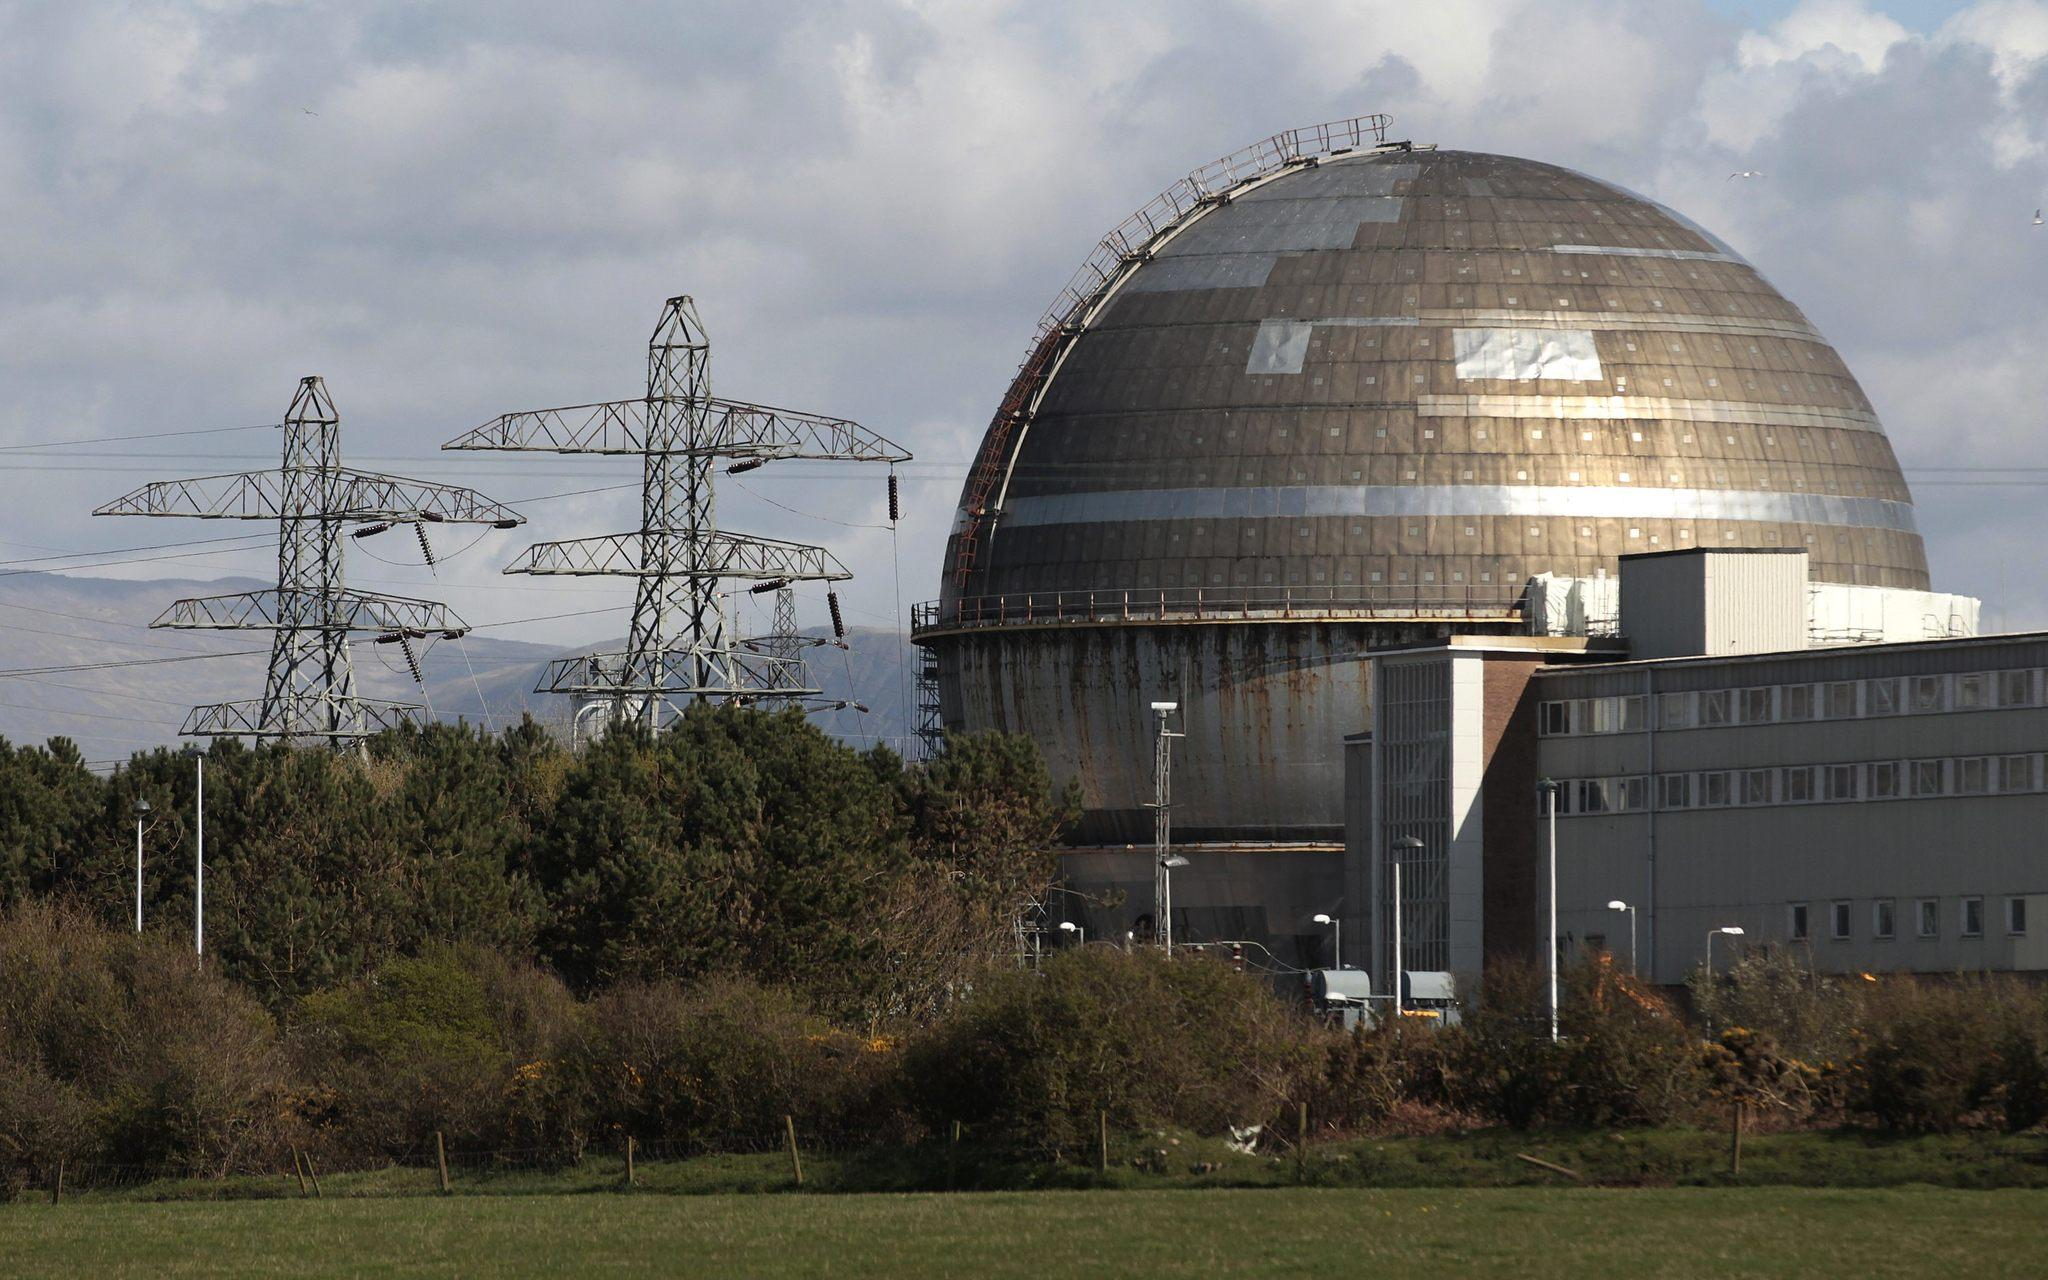 The Sellafield nuclear reprocessing site is seen near Seascale in Cumbria, northern England April 12, 2011. British nuclear reprocessing plant Sellafield said it had detected high levels of radioactivity at one of its on-site monitors and was operating at reduced staffing levels on January 31, 2014. Picture taken April 12, 2011.